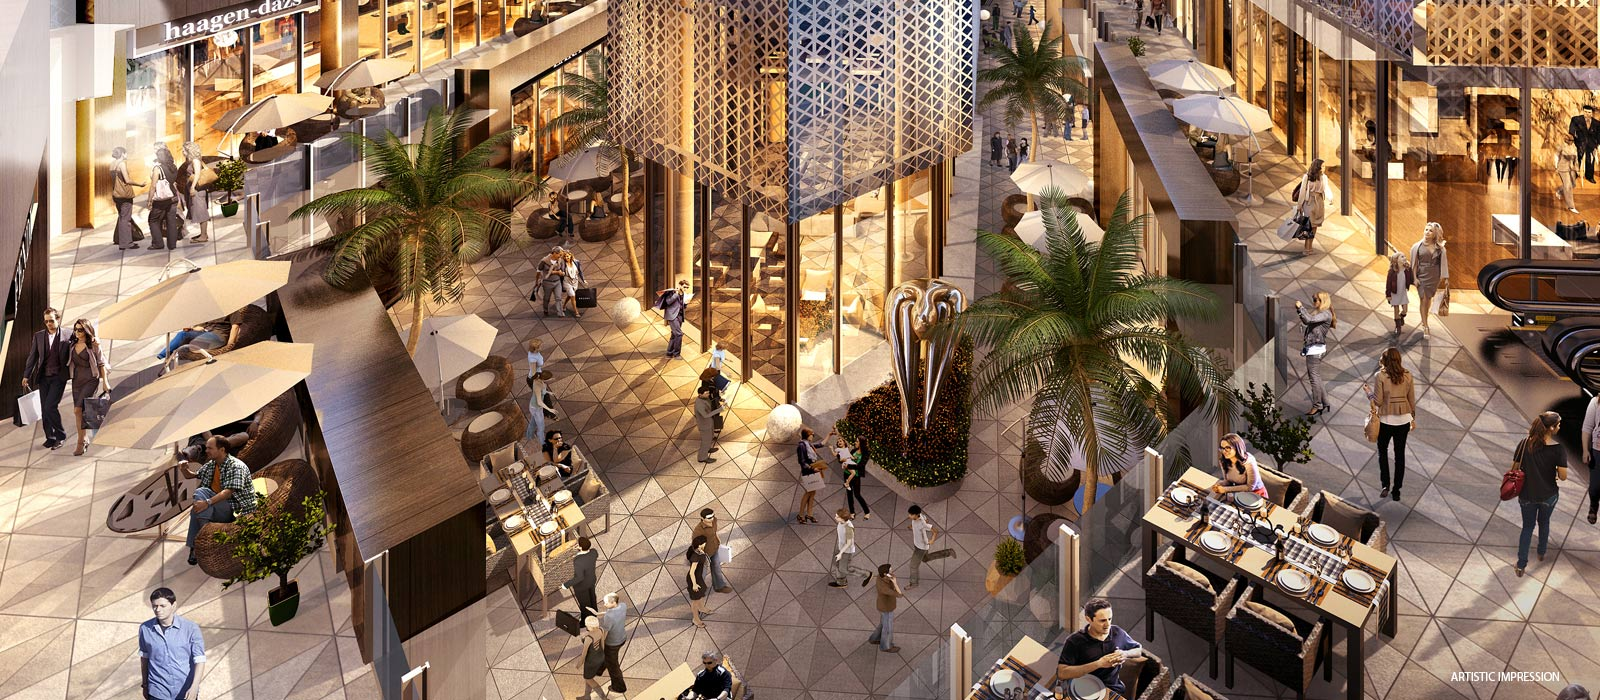 M3M IFC - Buy Triple Height Shops On Golf Course Extension Road Gurgaon